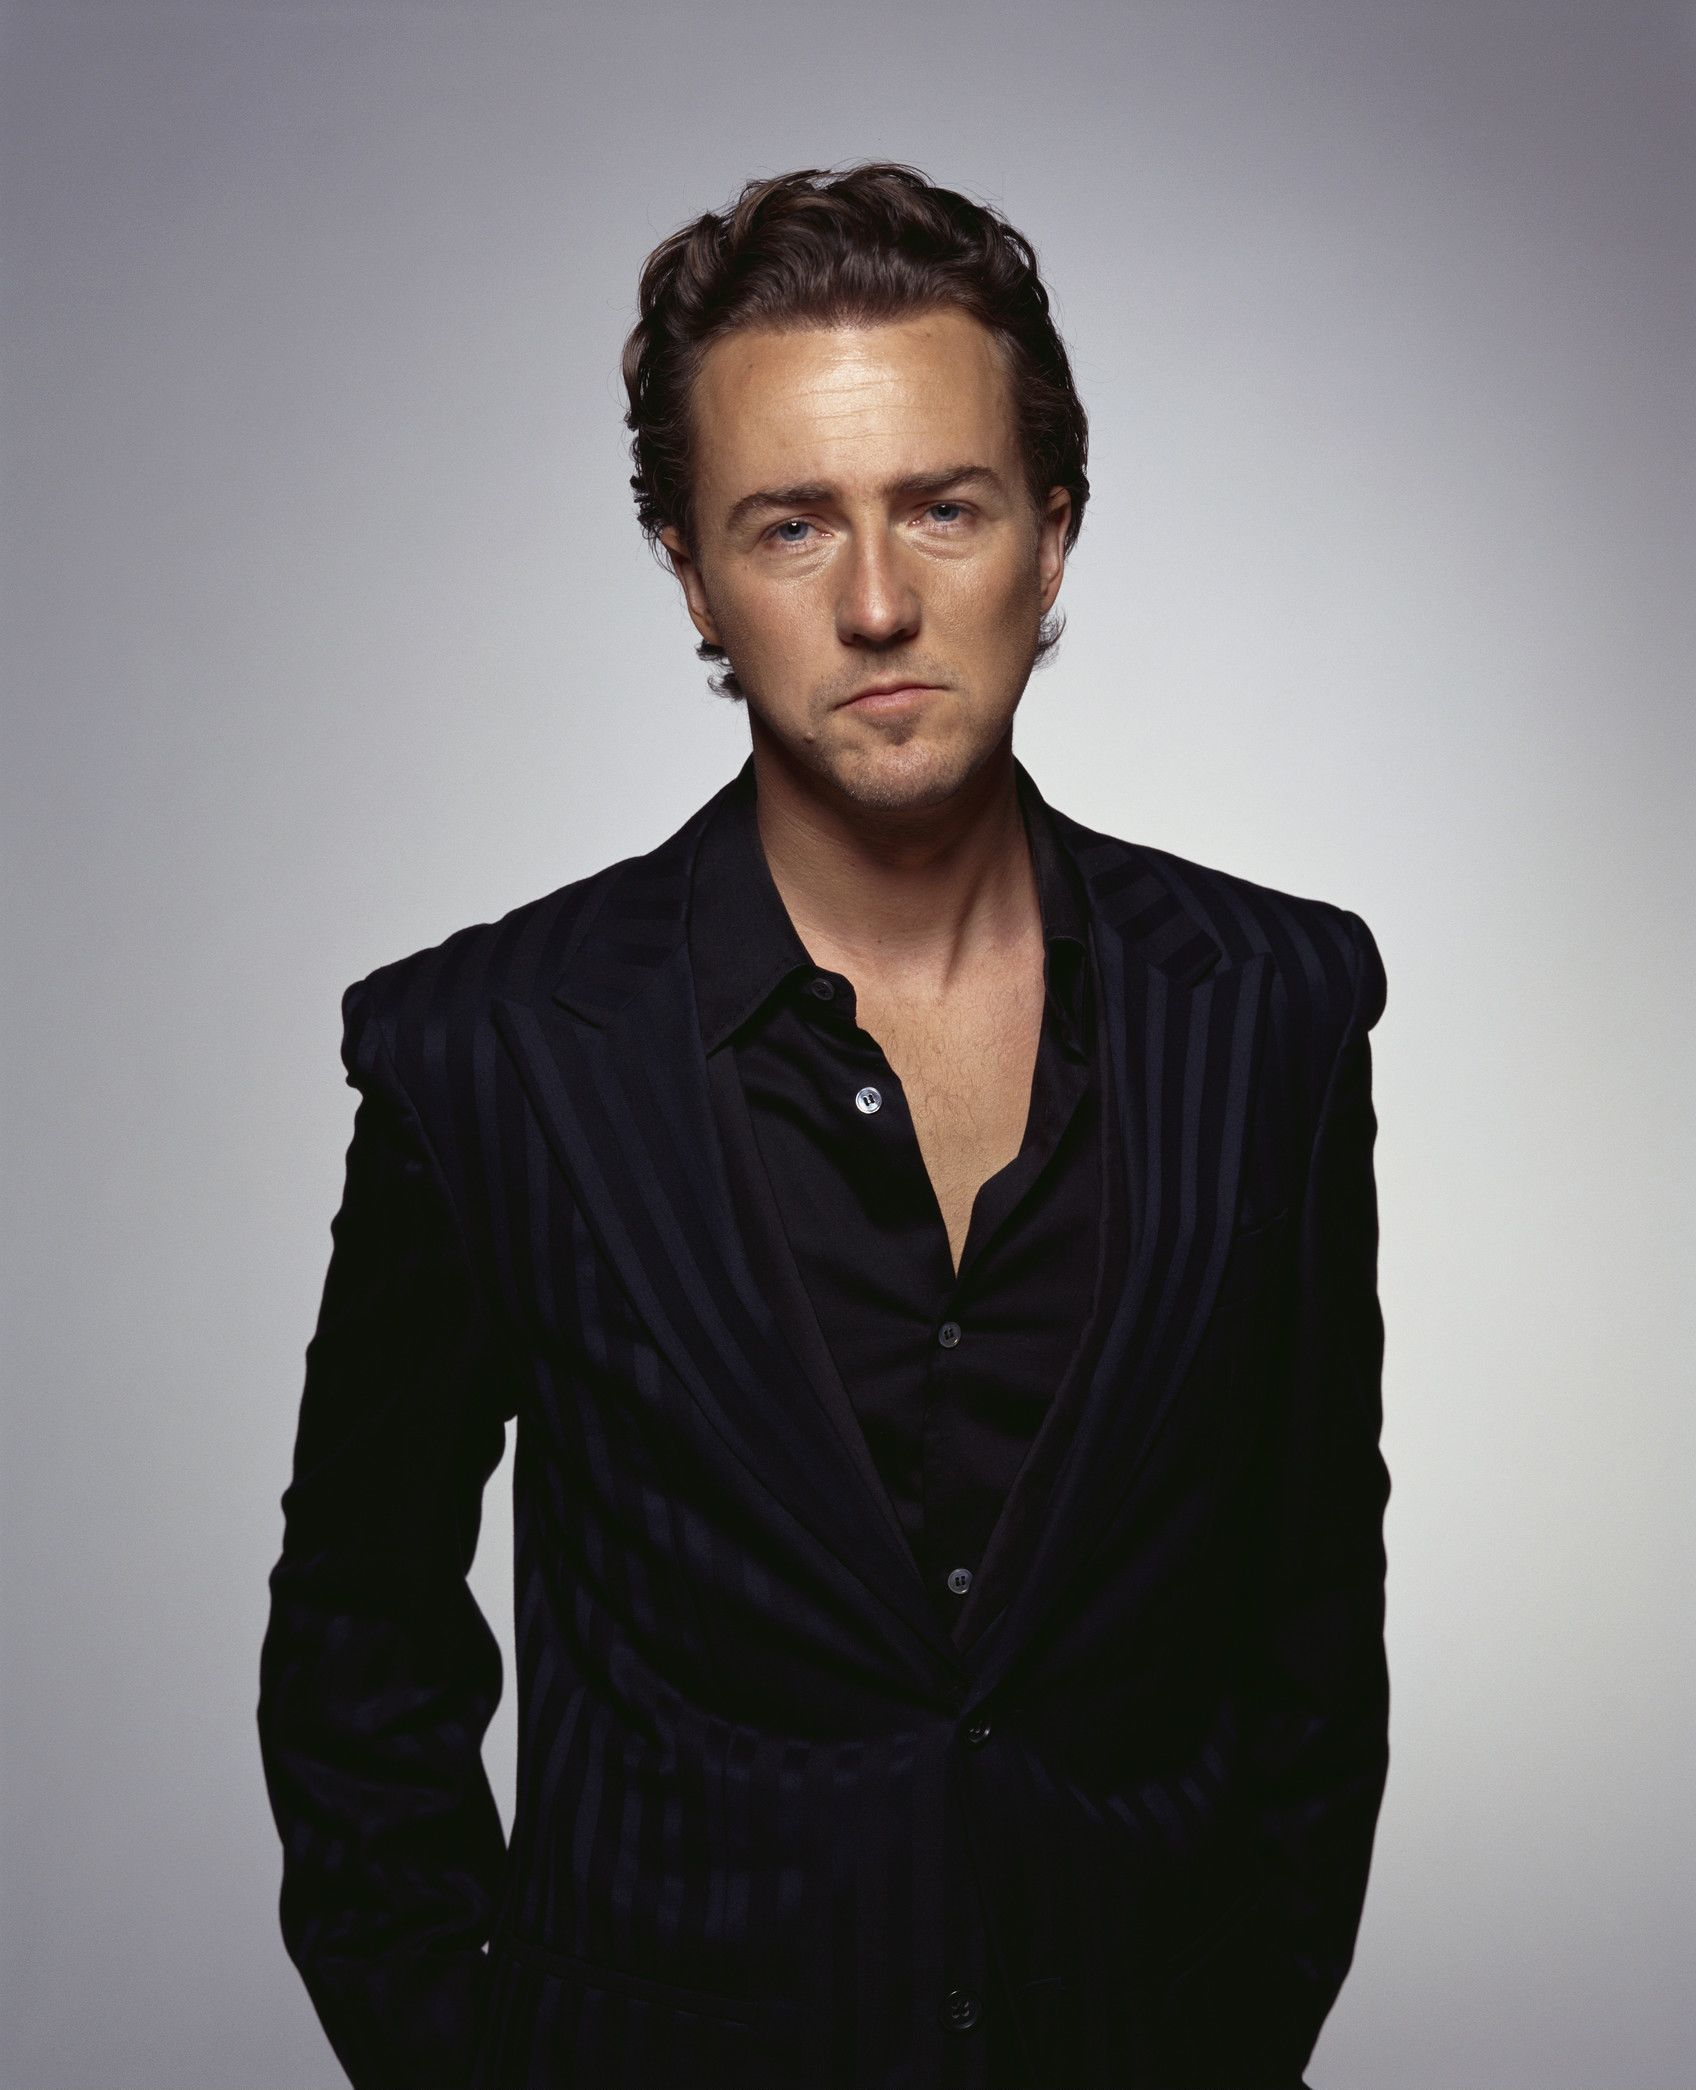 Edward Norton Background